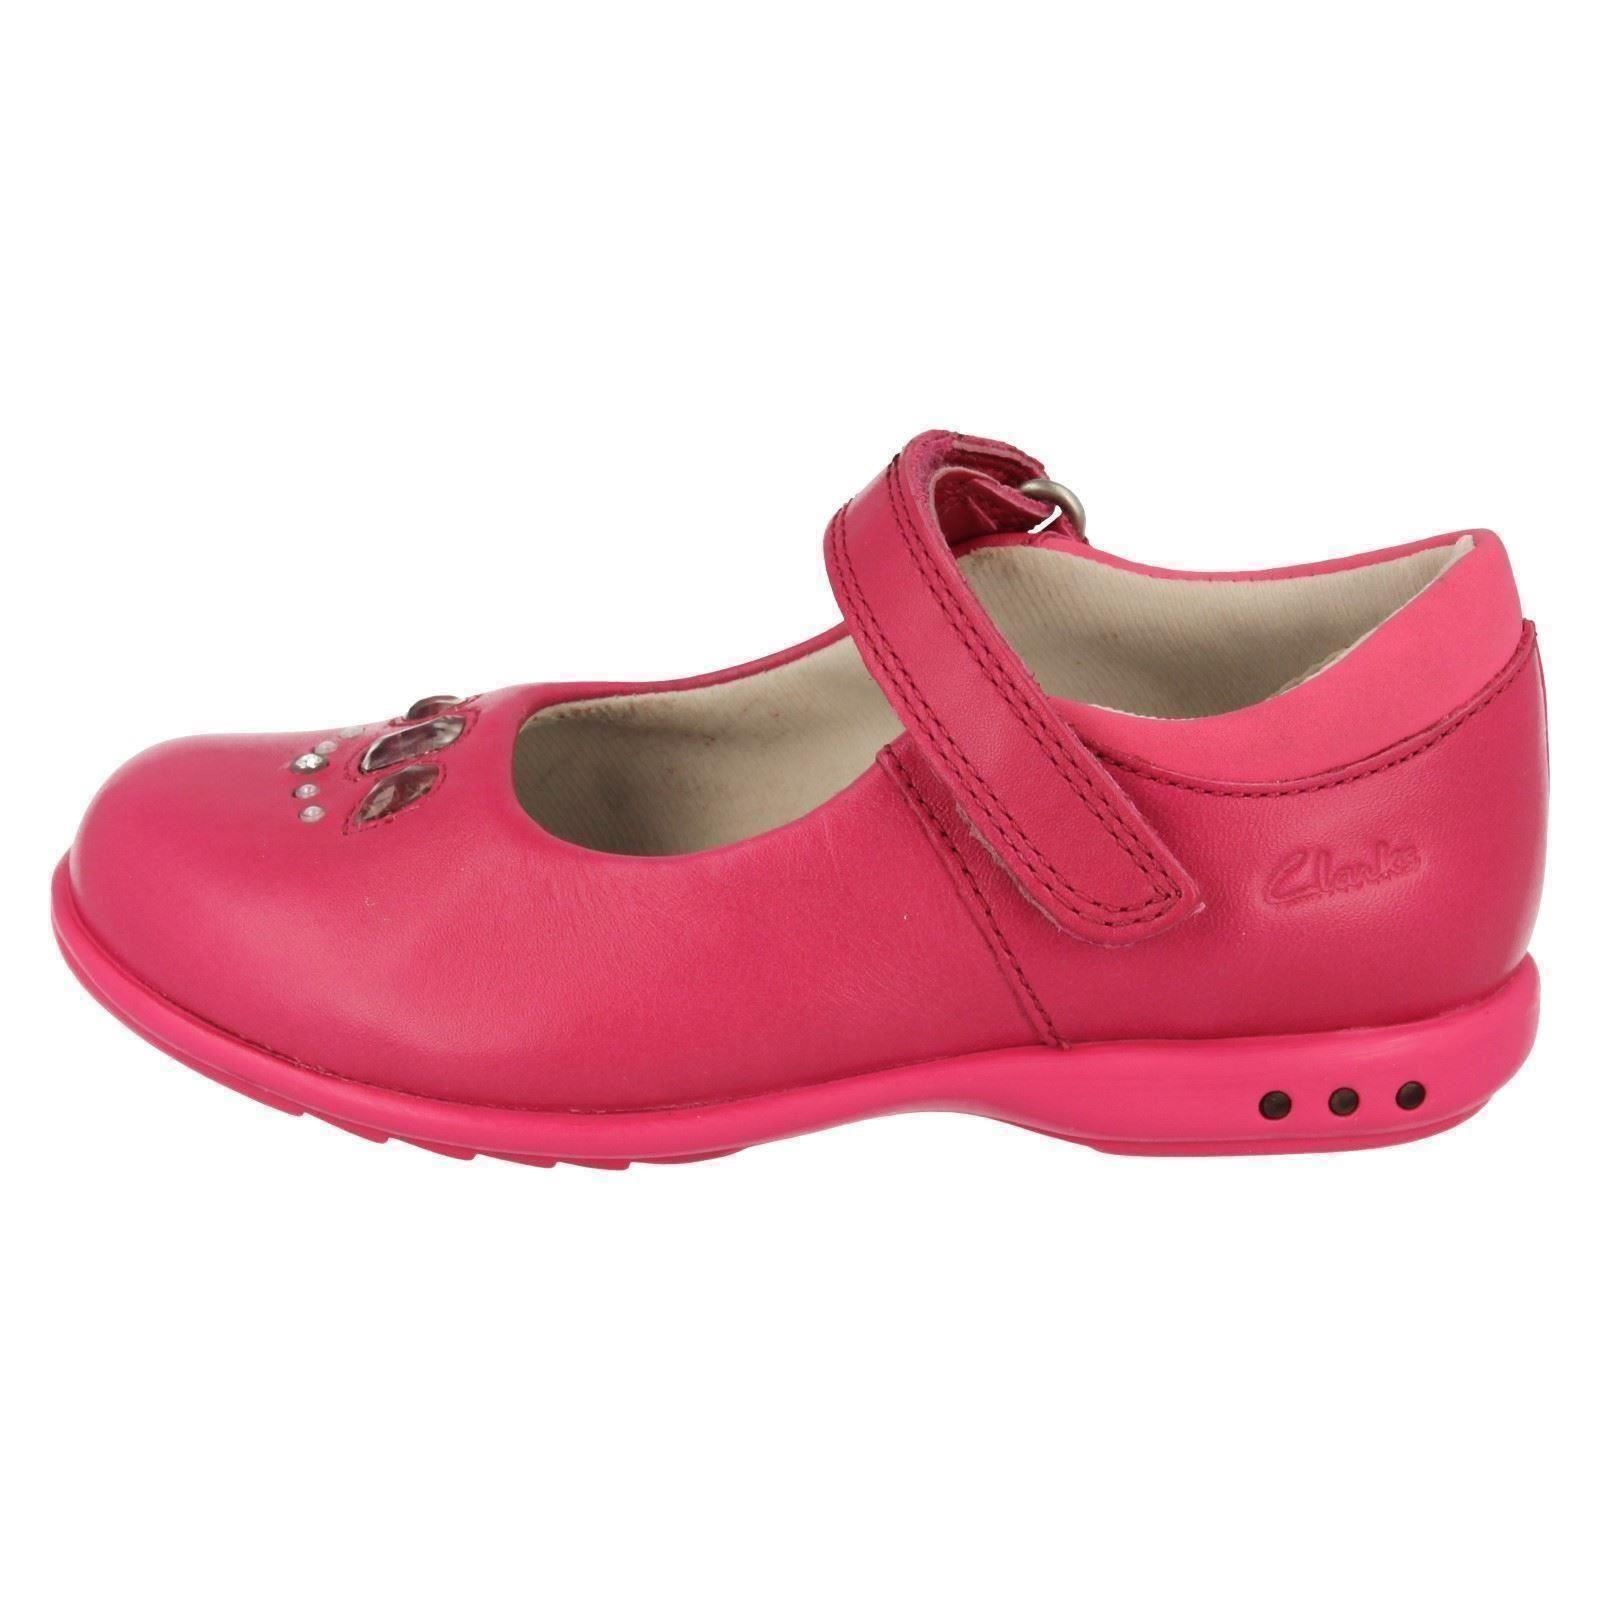 Girls Clarks Casual Shoes with Lights /'Trixi Spice/'